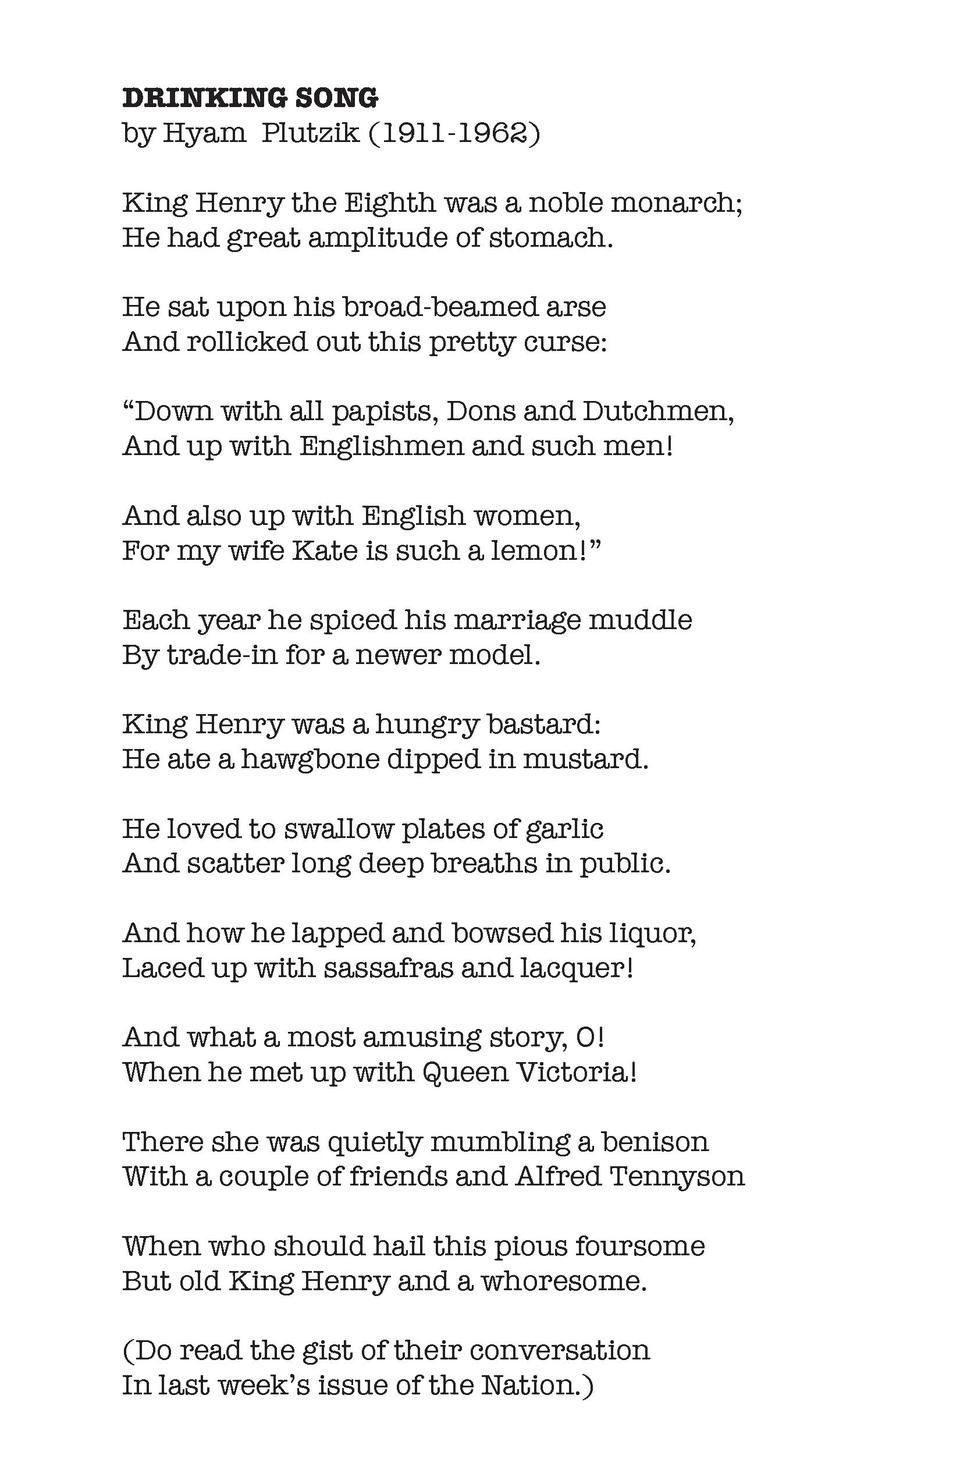 DRINKING SONG by Hyam Plutzik  1911-1962  King Henry the Eighth was a noble monarch  He had great amplitude of stomach. He...